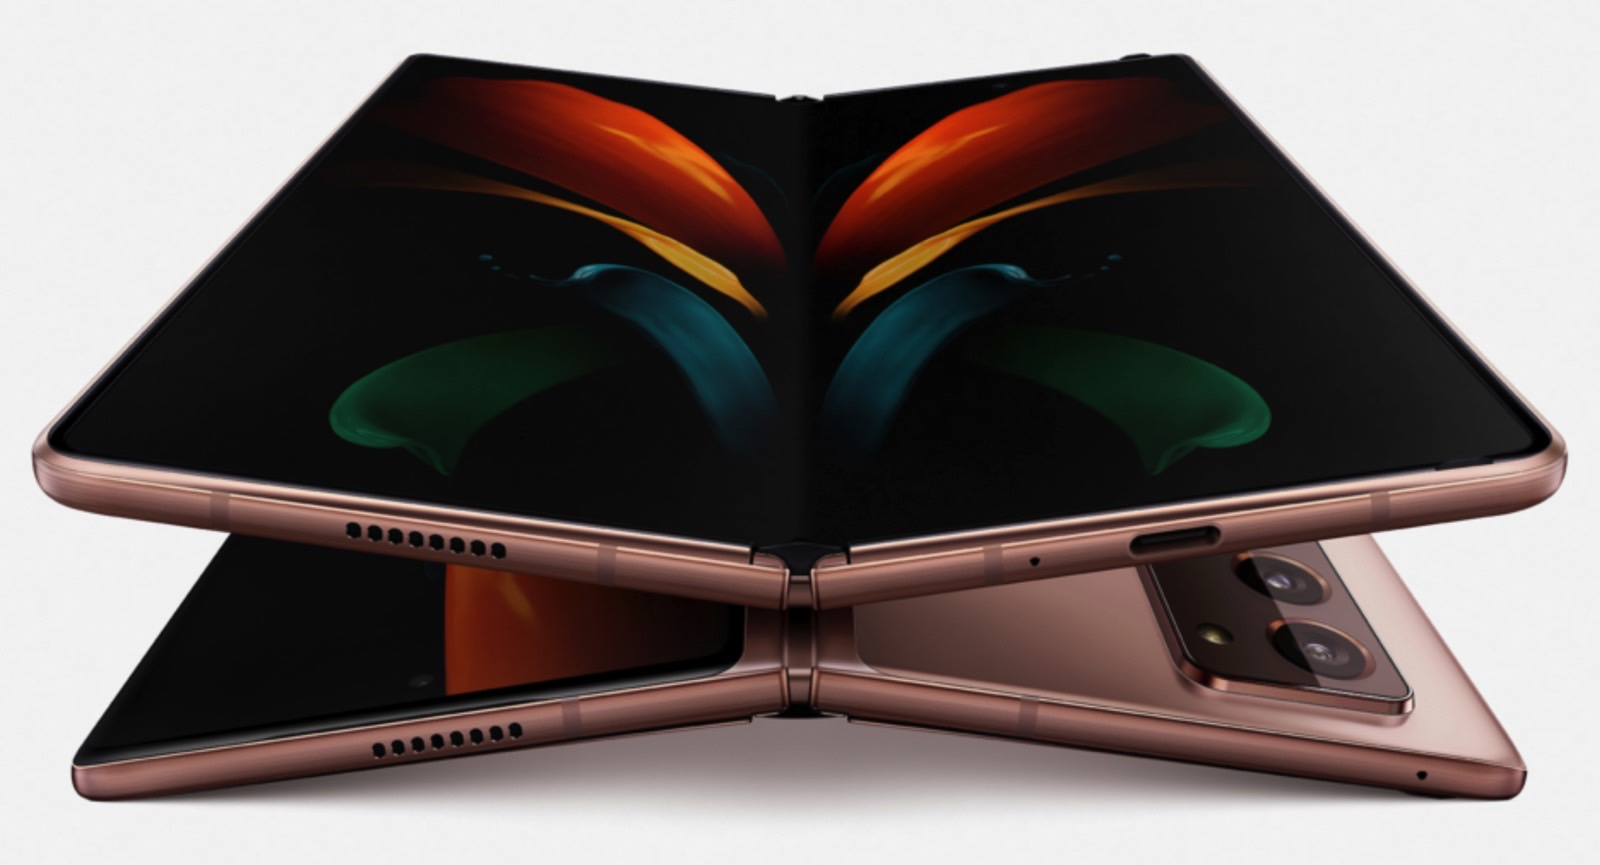 Launch timing for Samsung's exciting new tri-fold Galaxy device might've just leaked